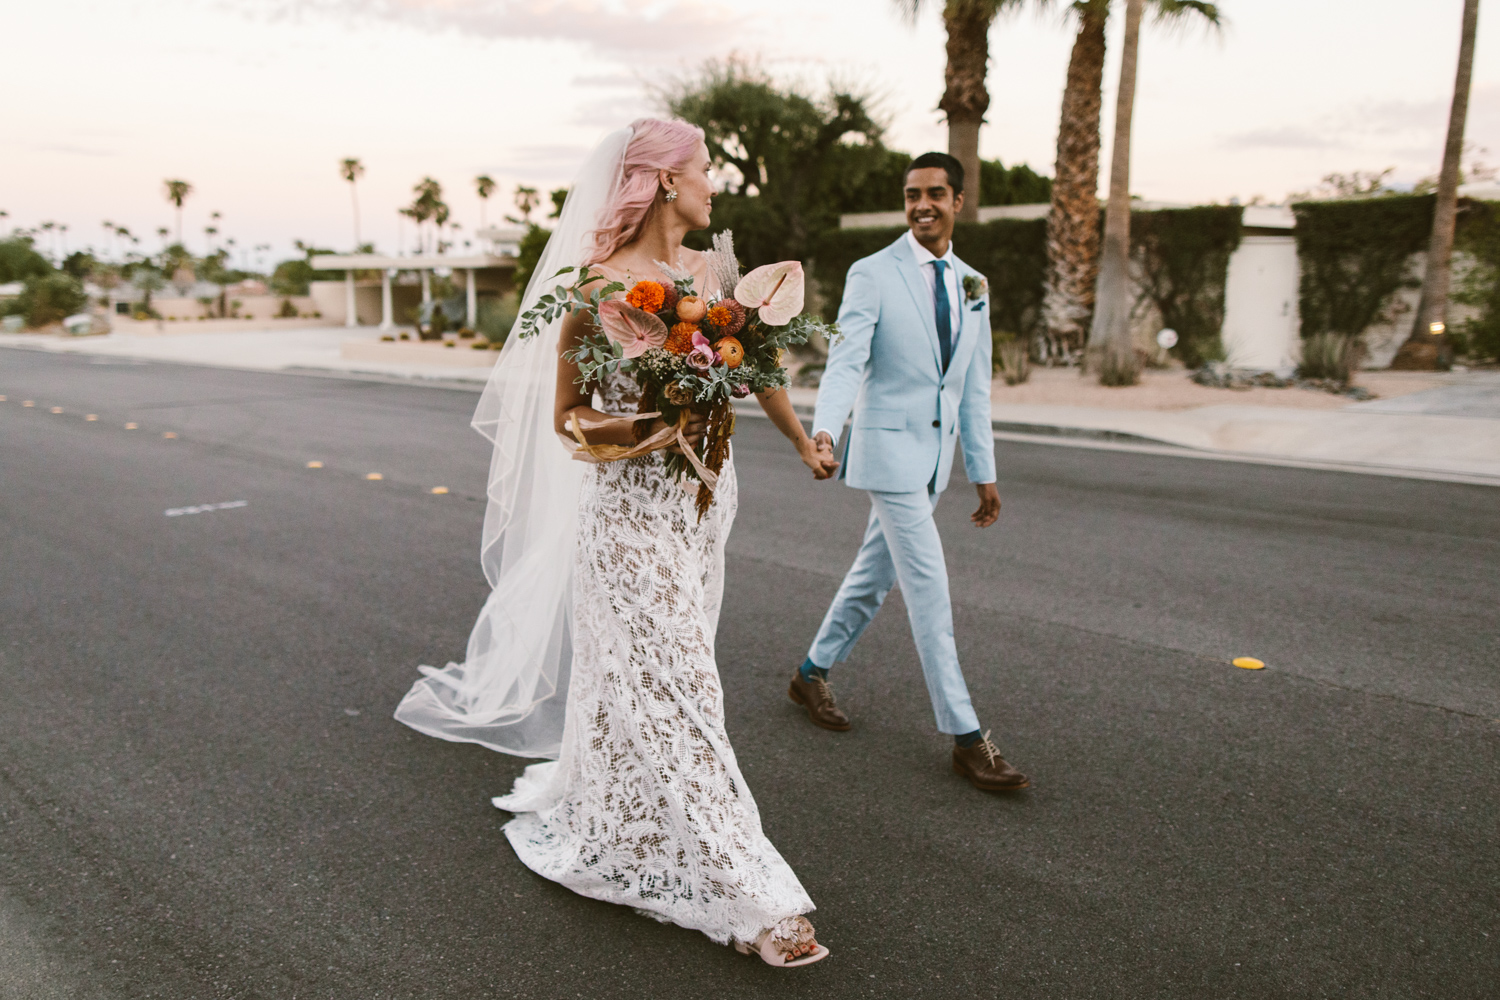 westlund-photography-palm-springs-wedding-53.jpg